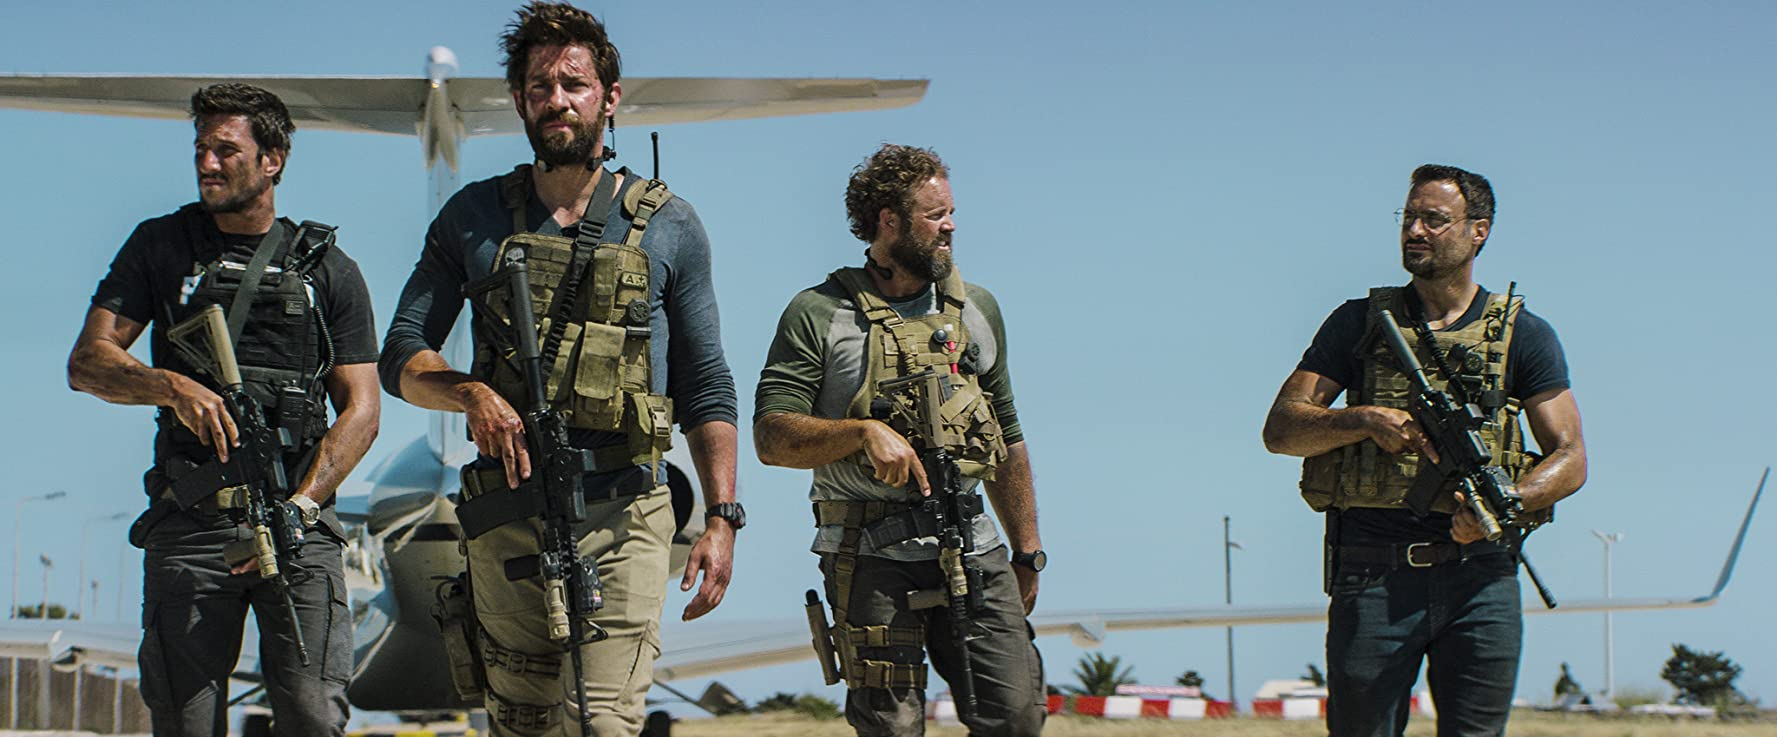 13 Hours: The Secret Soldiers of Benghazi, filme online subtitrat în Română